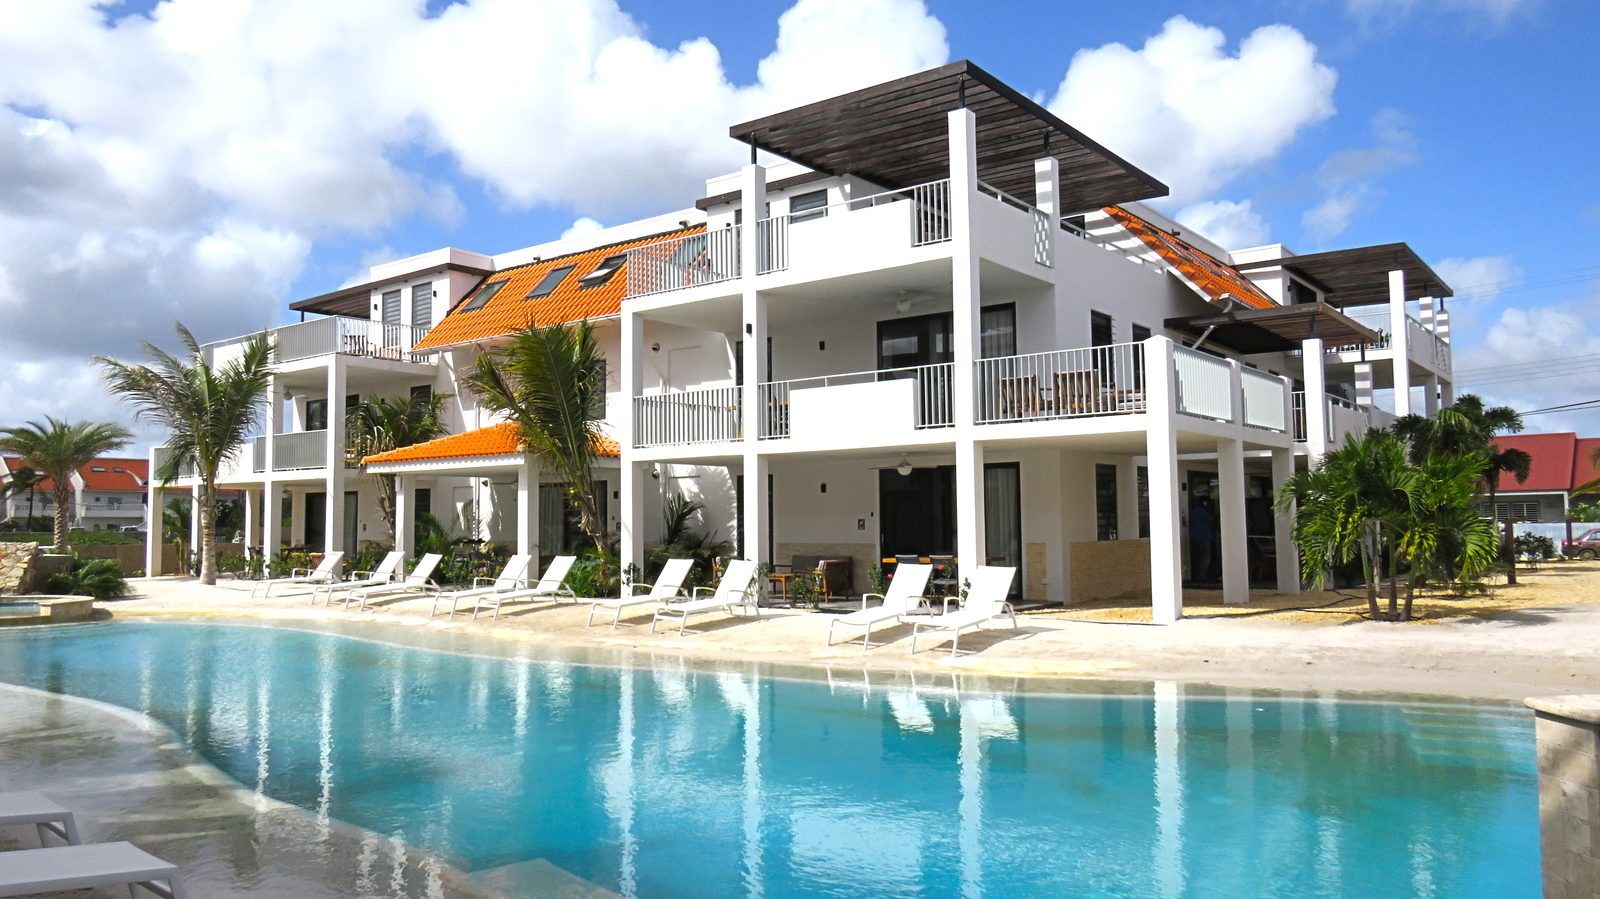 Looking for a stay on Bonaire? Choose Resort Bonaire. A new, luxurious resort with apartments that offer everything you need.